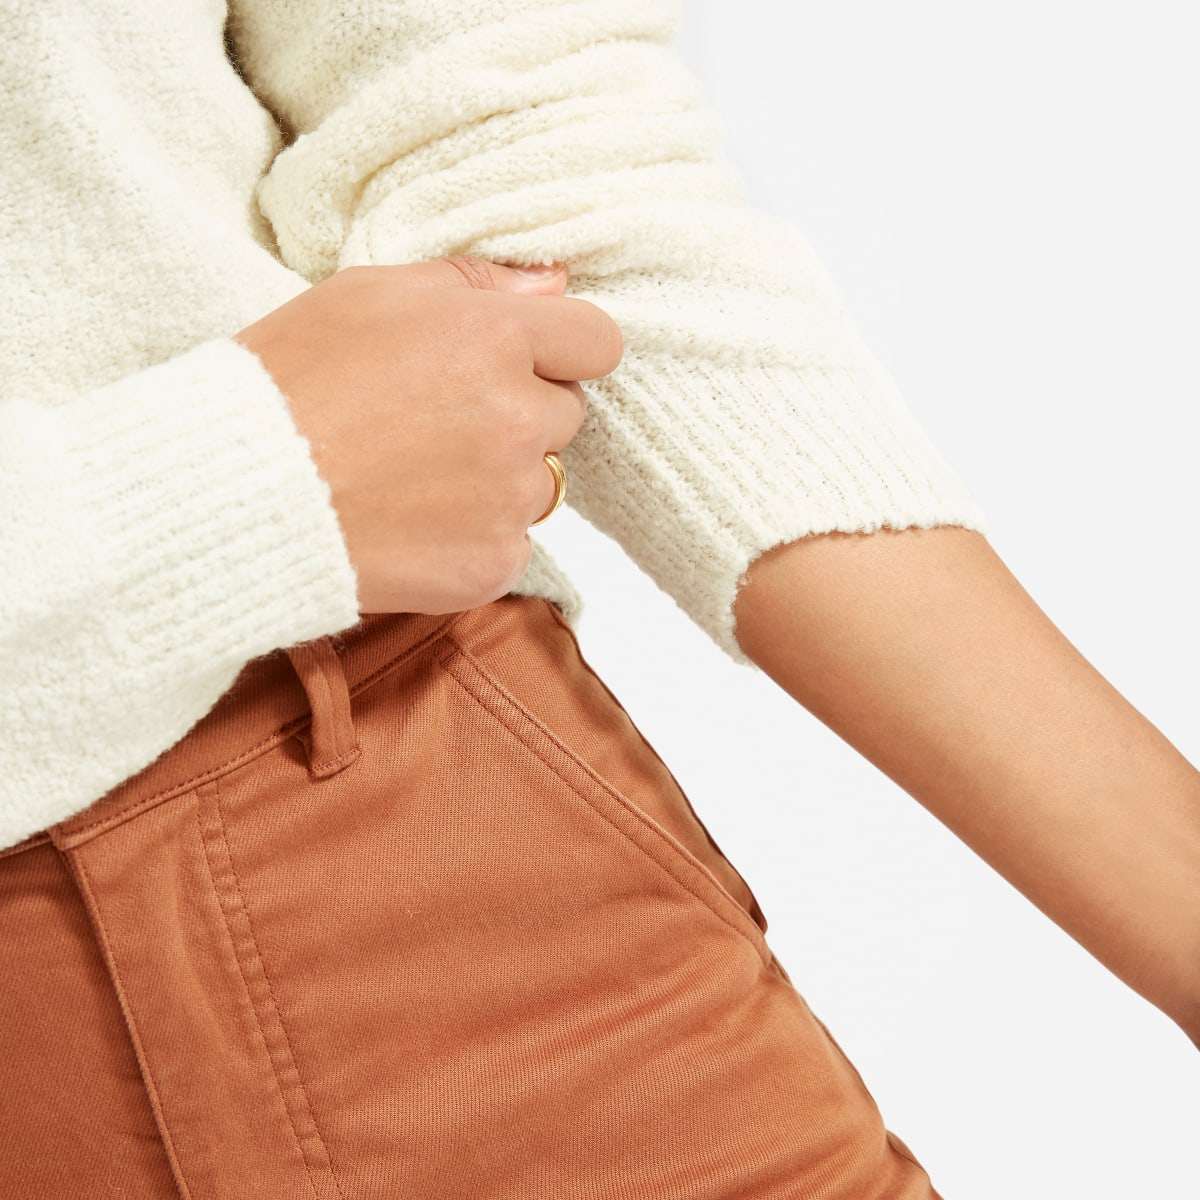 10 Must-Have Basics to Purchase From Everlane – Teddy Crew Neck Sweater